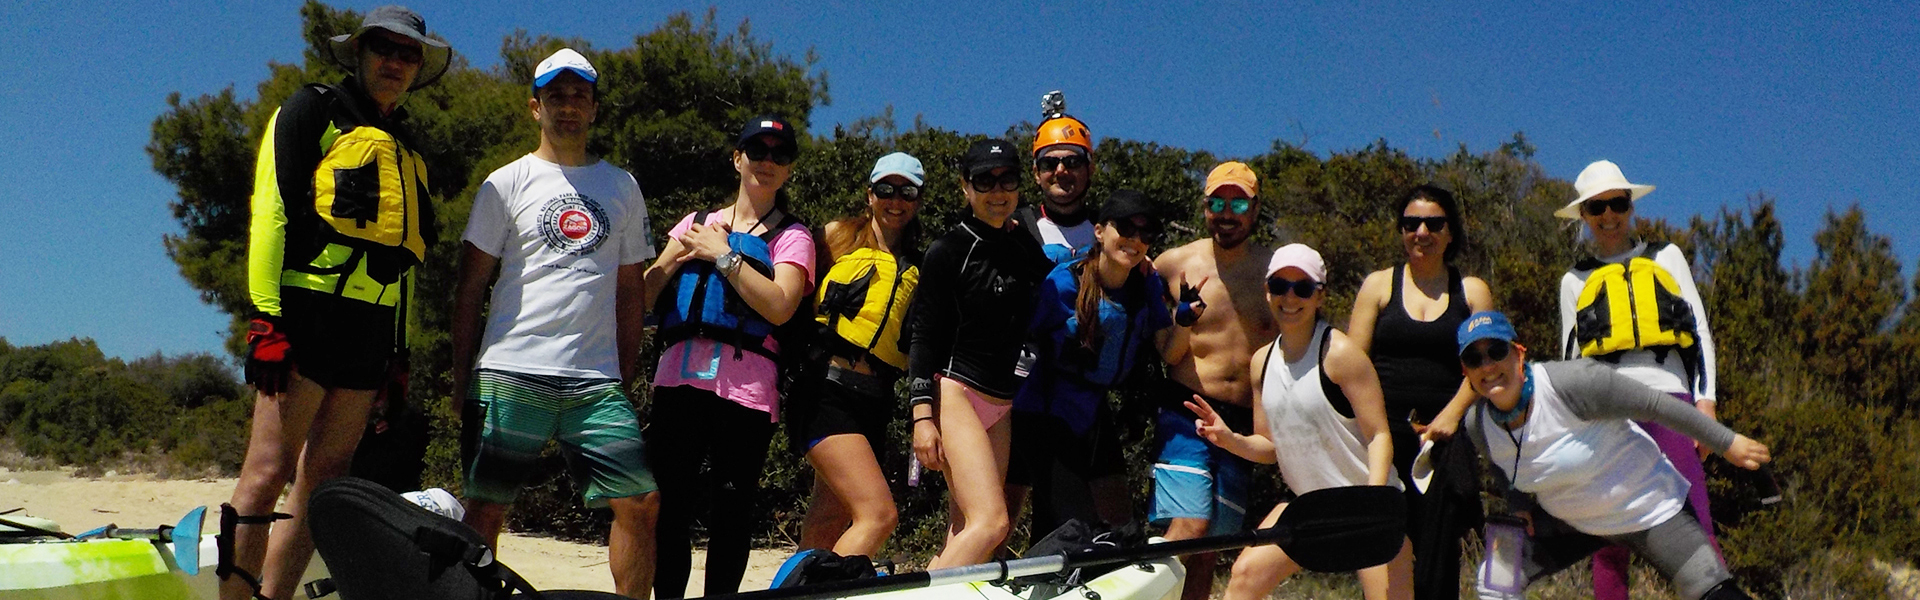 Kayak Sup Explorers - Tours Halkidiki 2